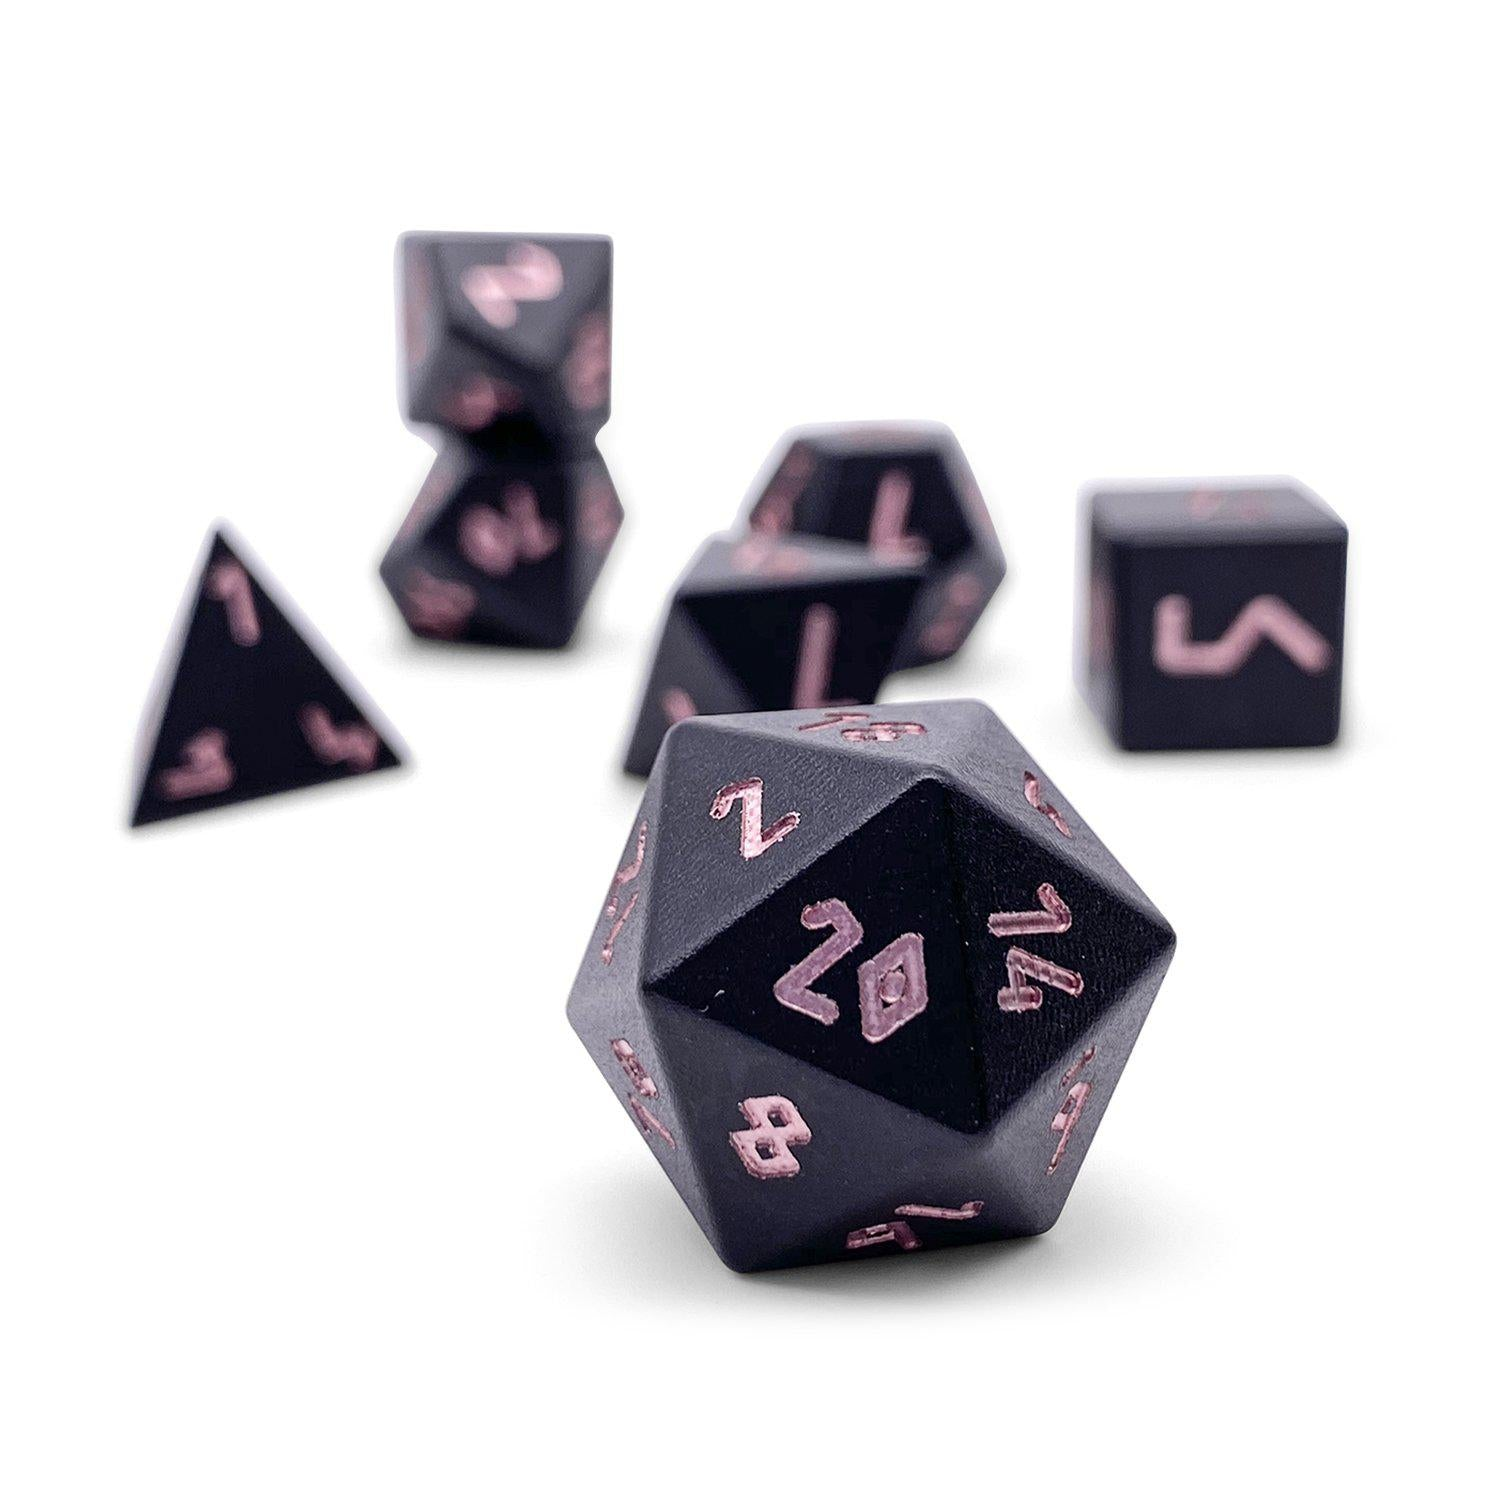 Orb of Annihilation - Wondrous Dice Set of 7 RPG Dice by Norse Foundry Precision Polyhedral Dice Set